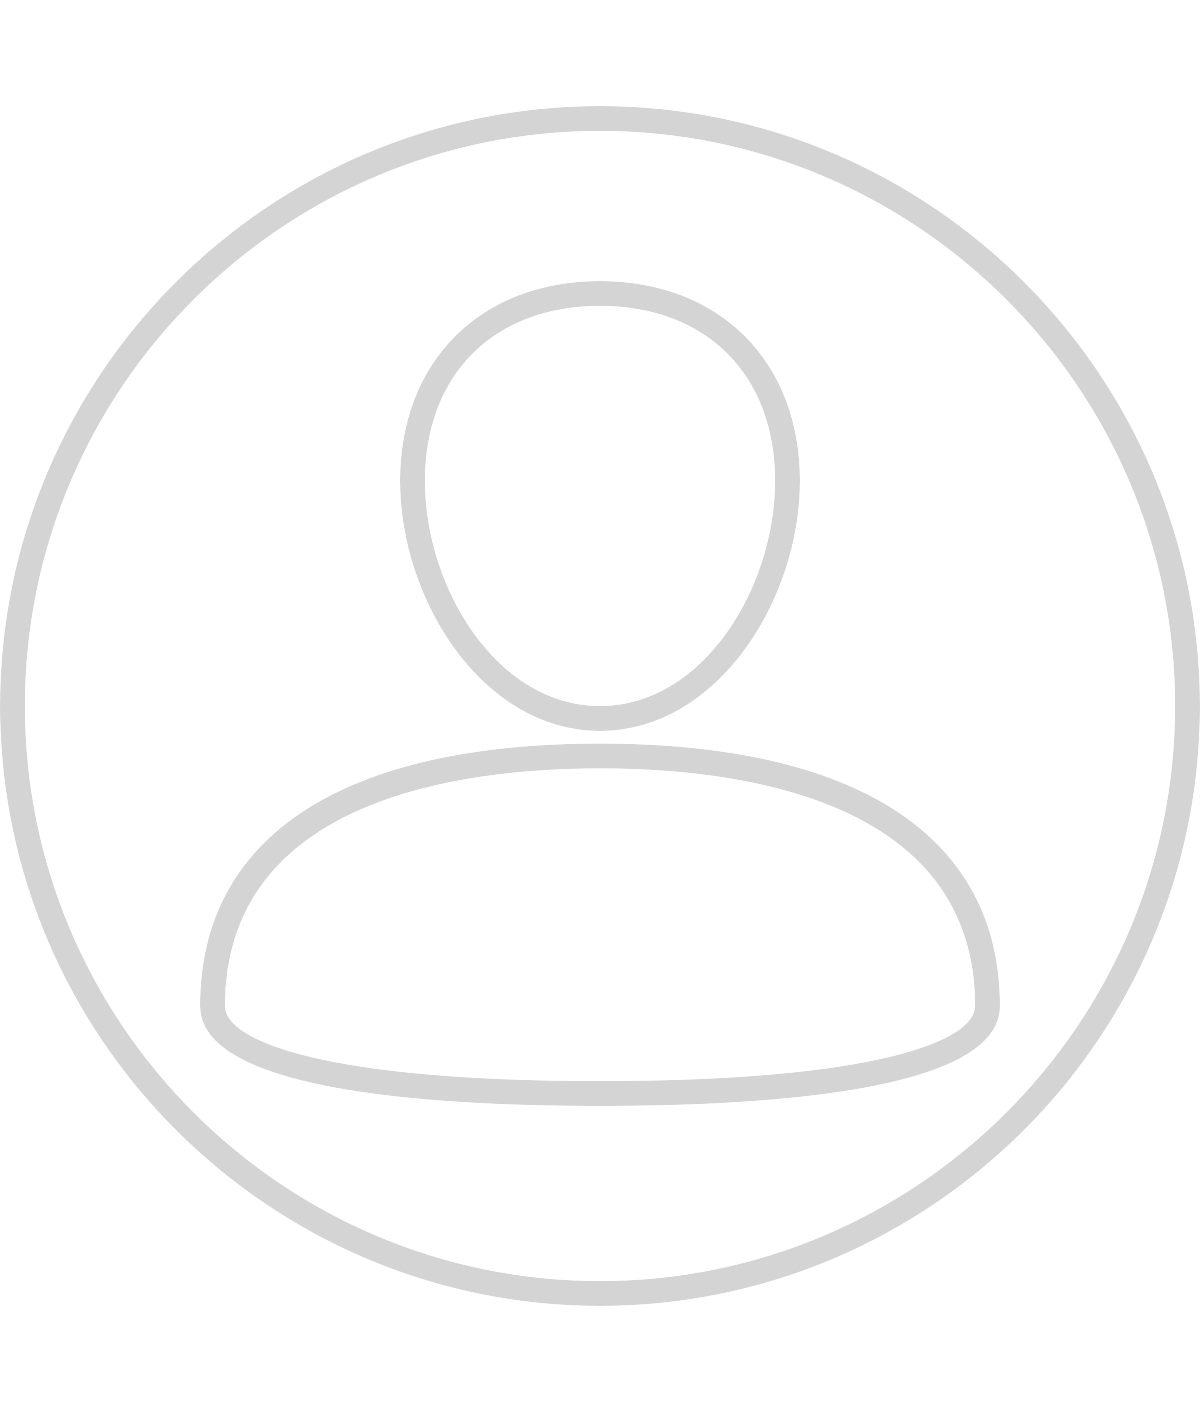 placeholder icon used in lieu of a photograph of Jillian Borders